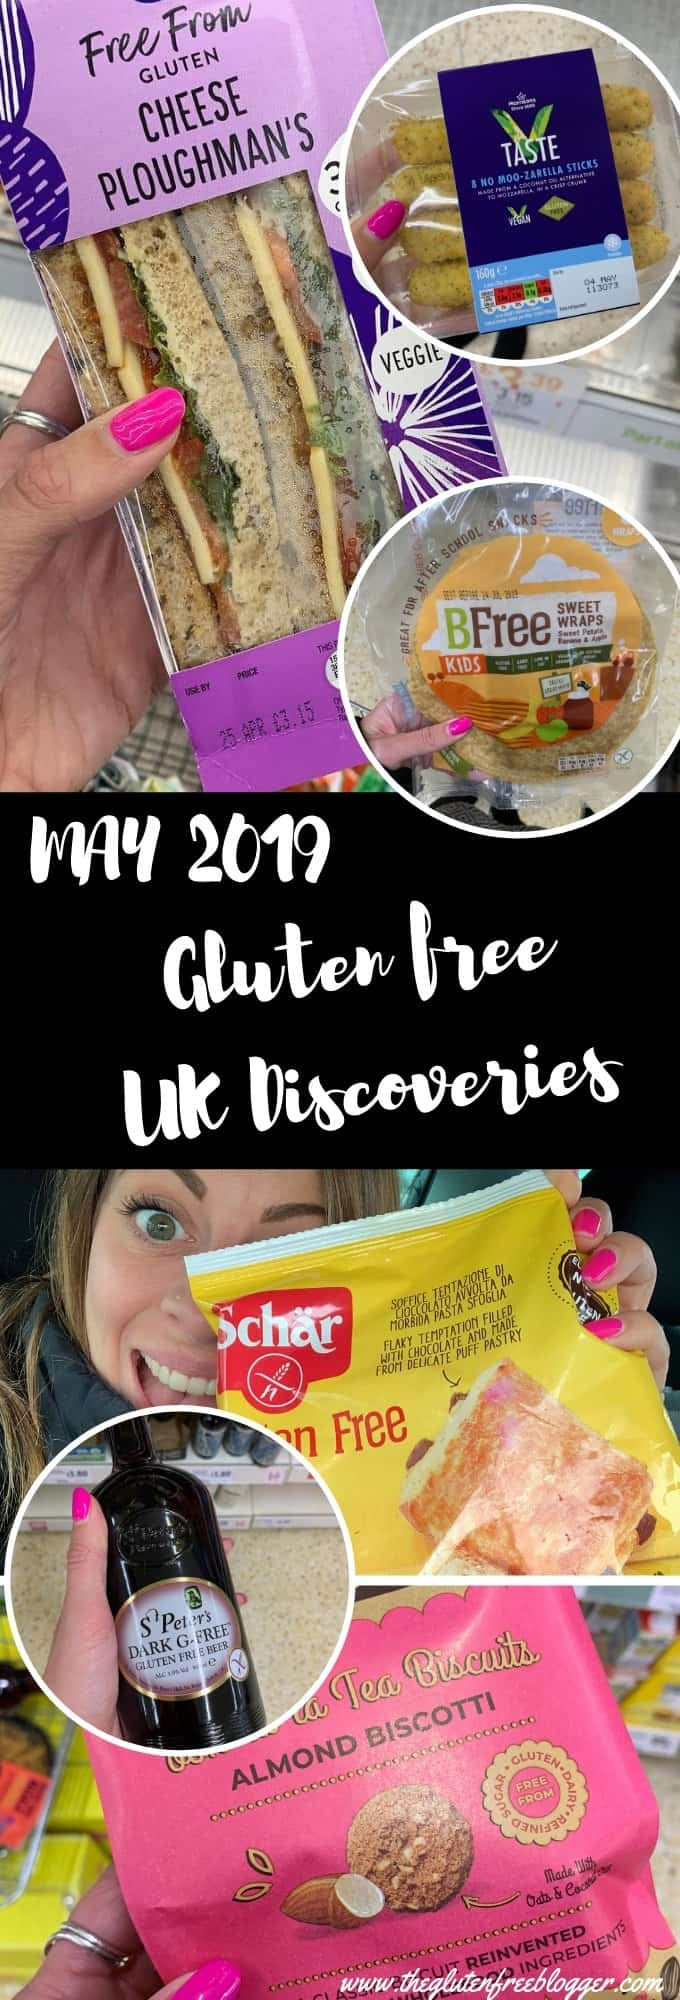 gluten free discoveries uk 2019 coeliac celiac